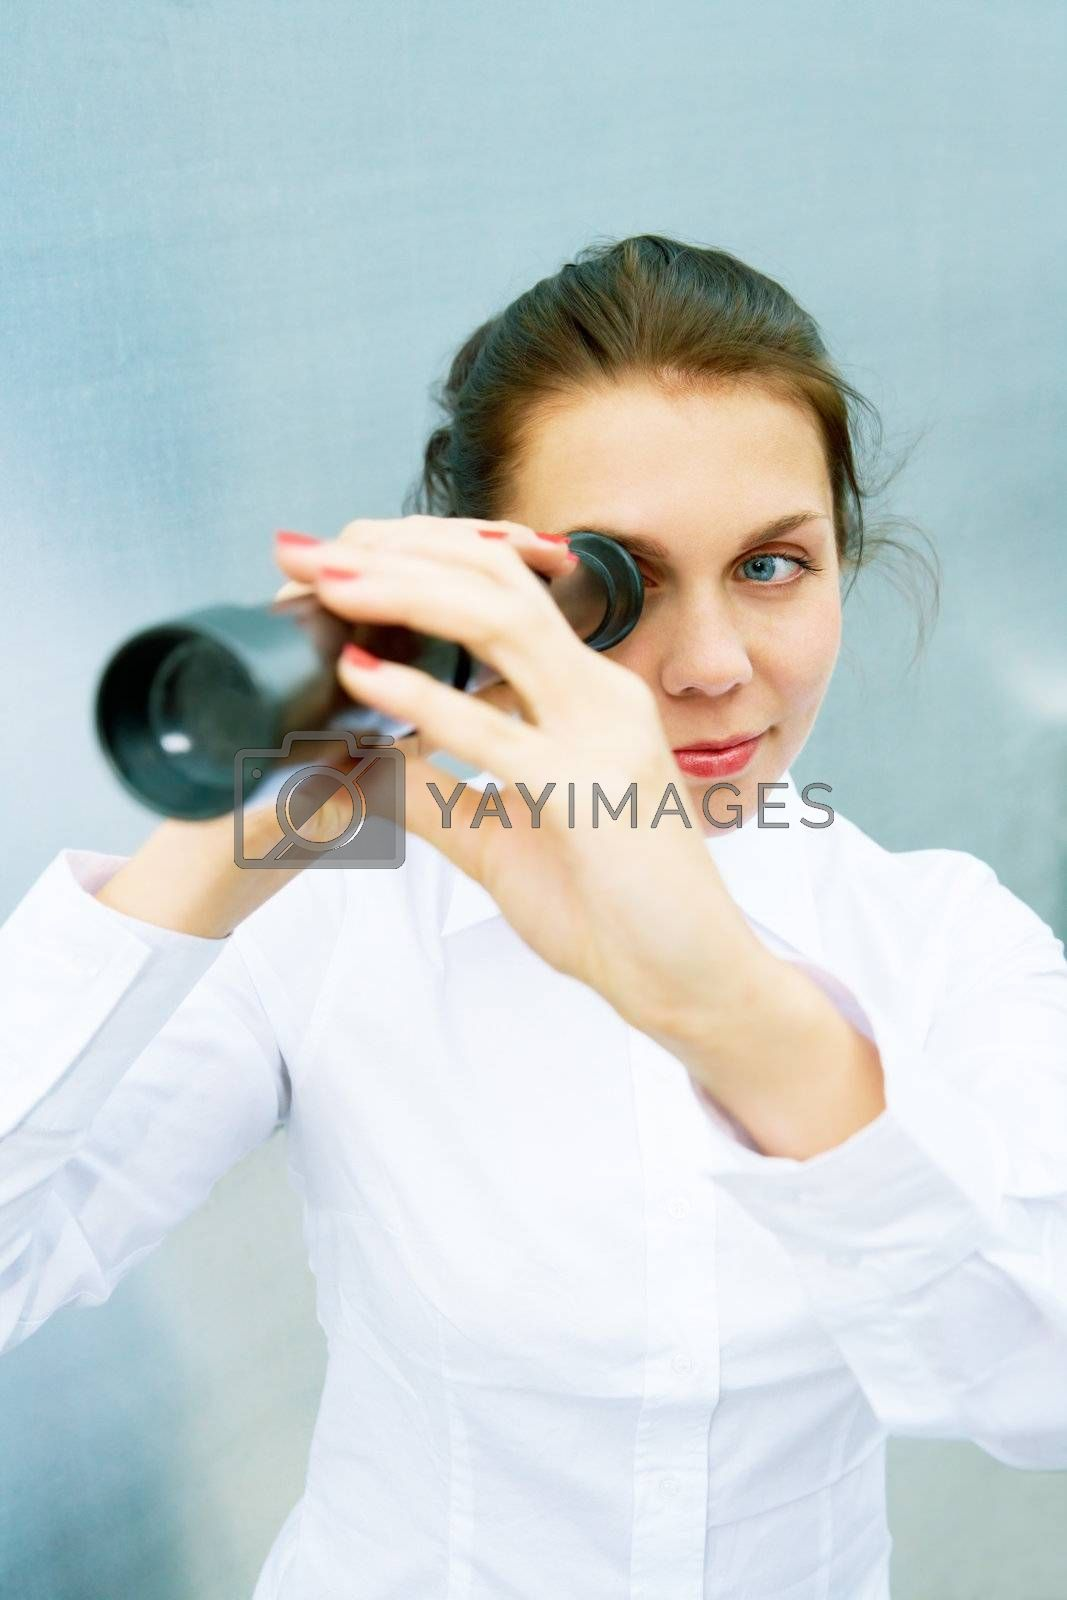 Royalty free image of Young Woman with Telescope by Luminis